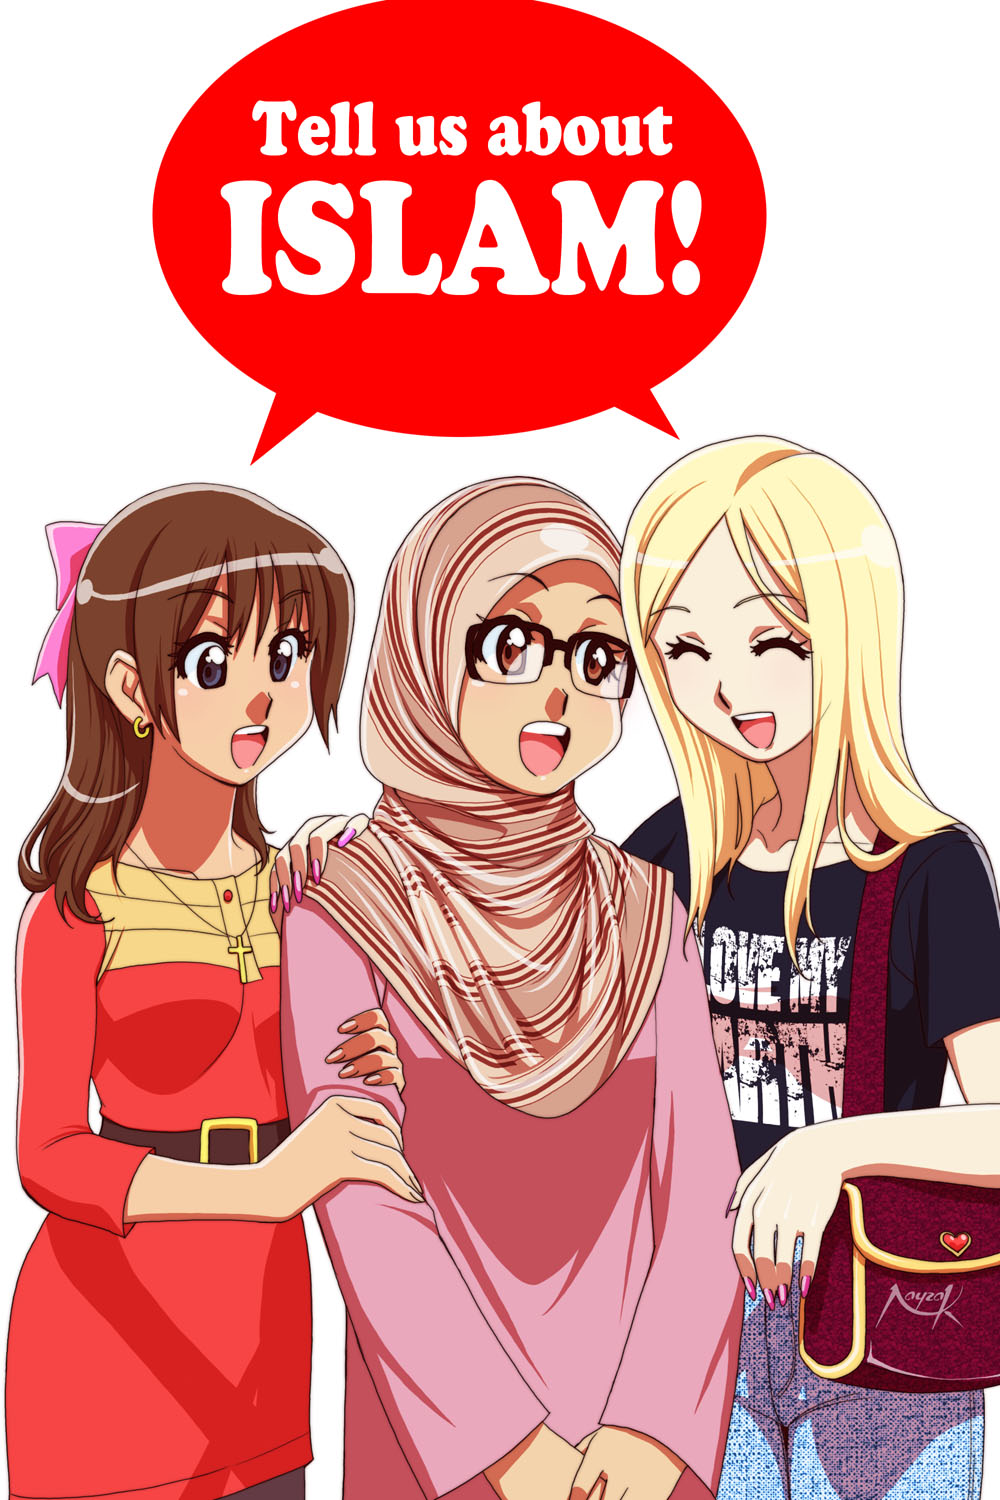 Tell us about ISLAM!